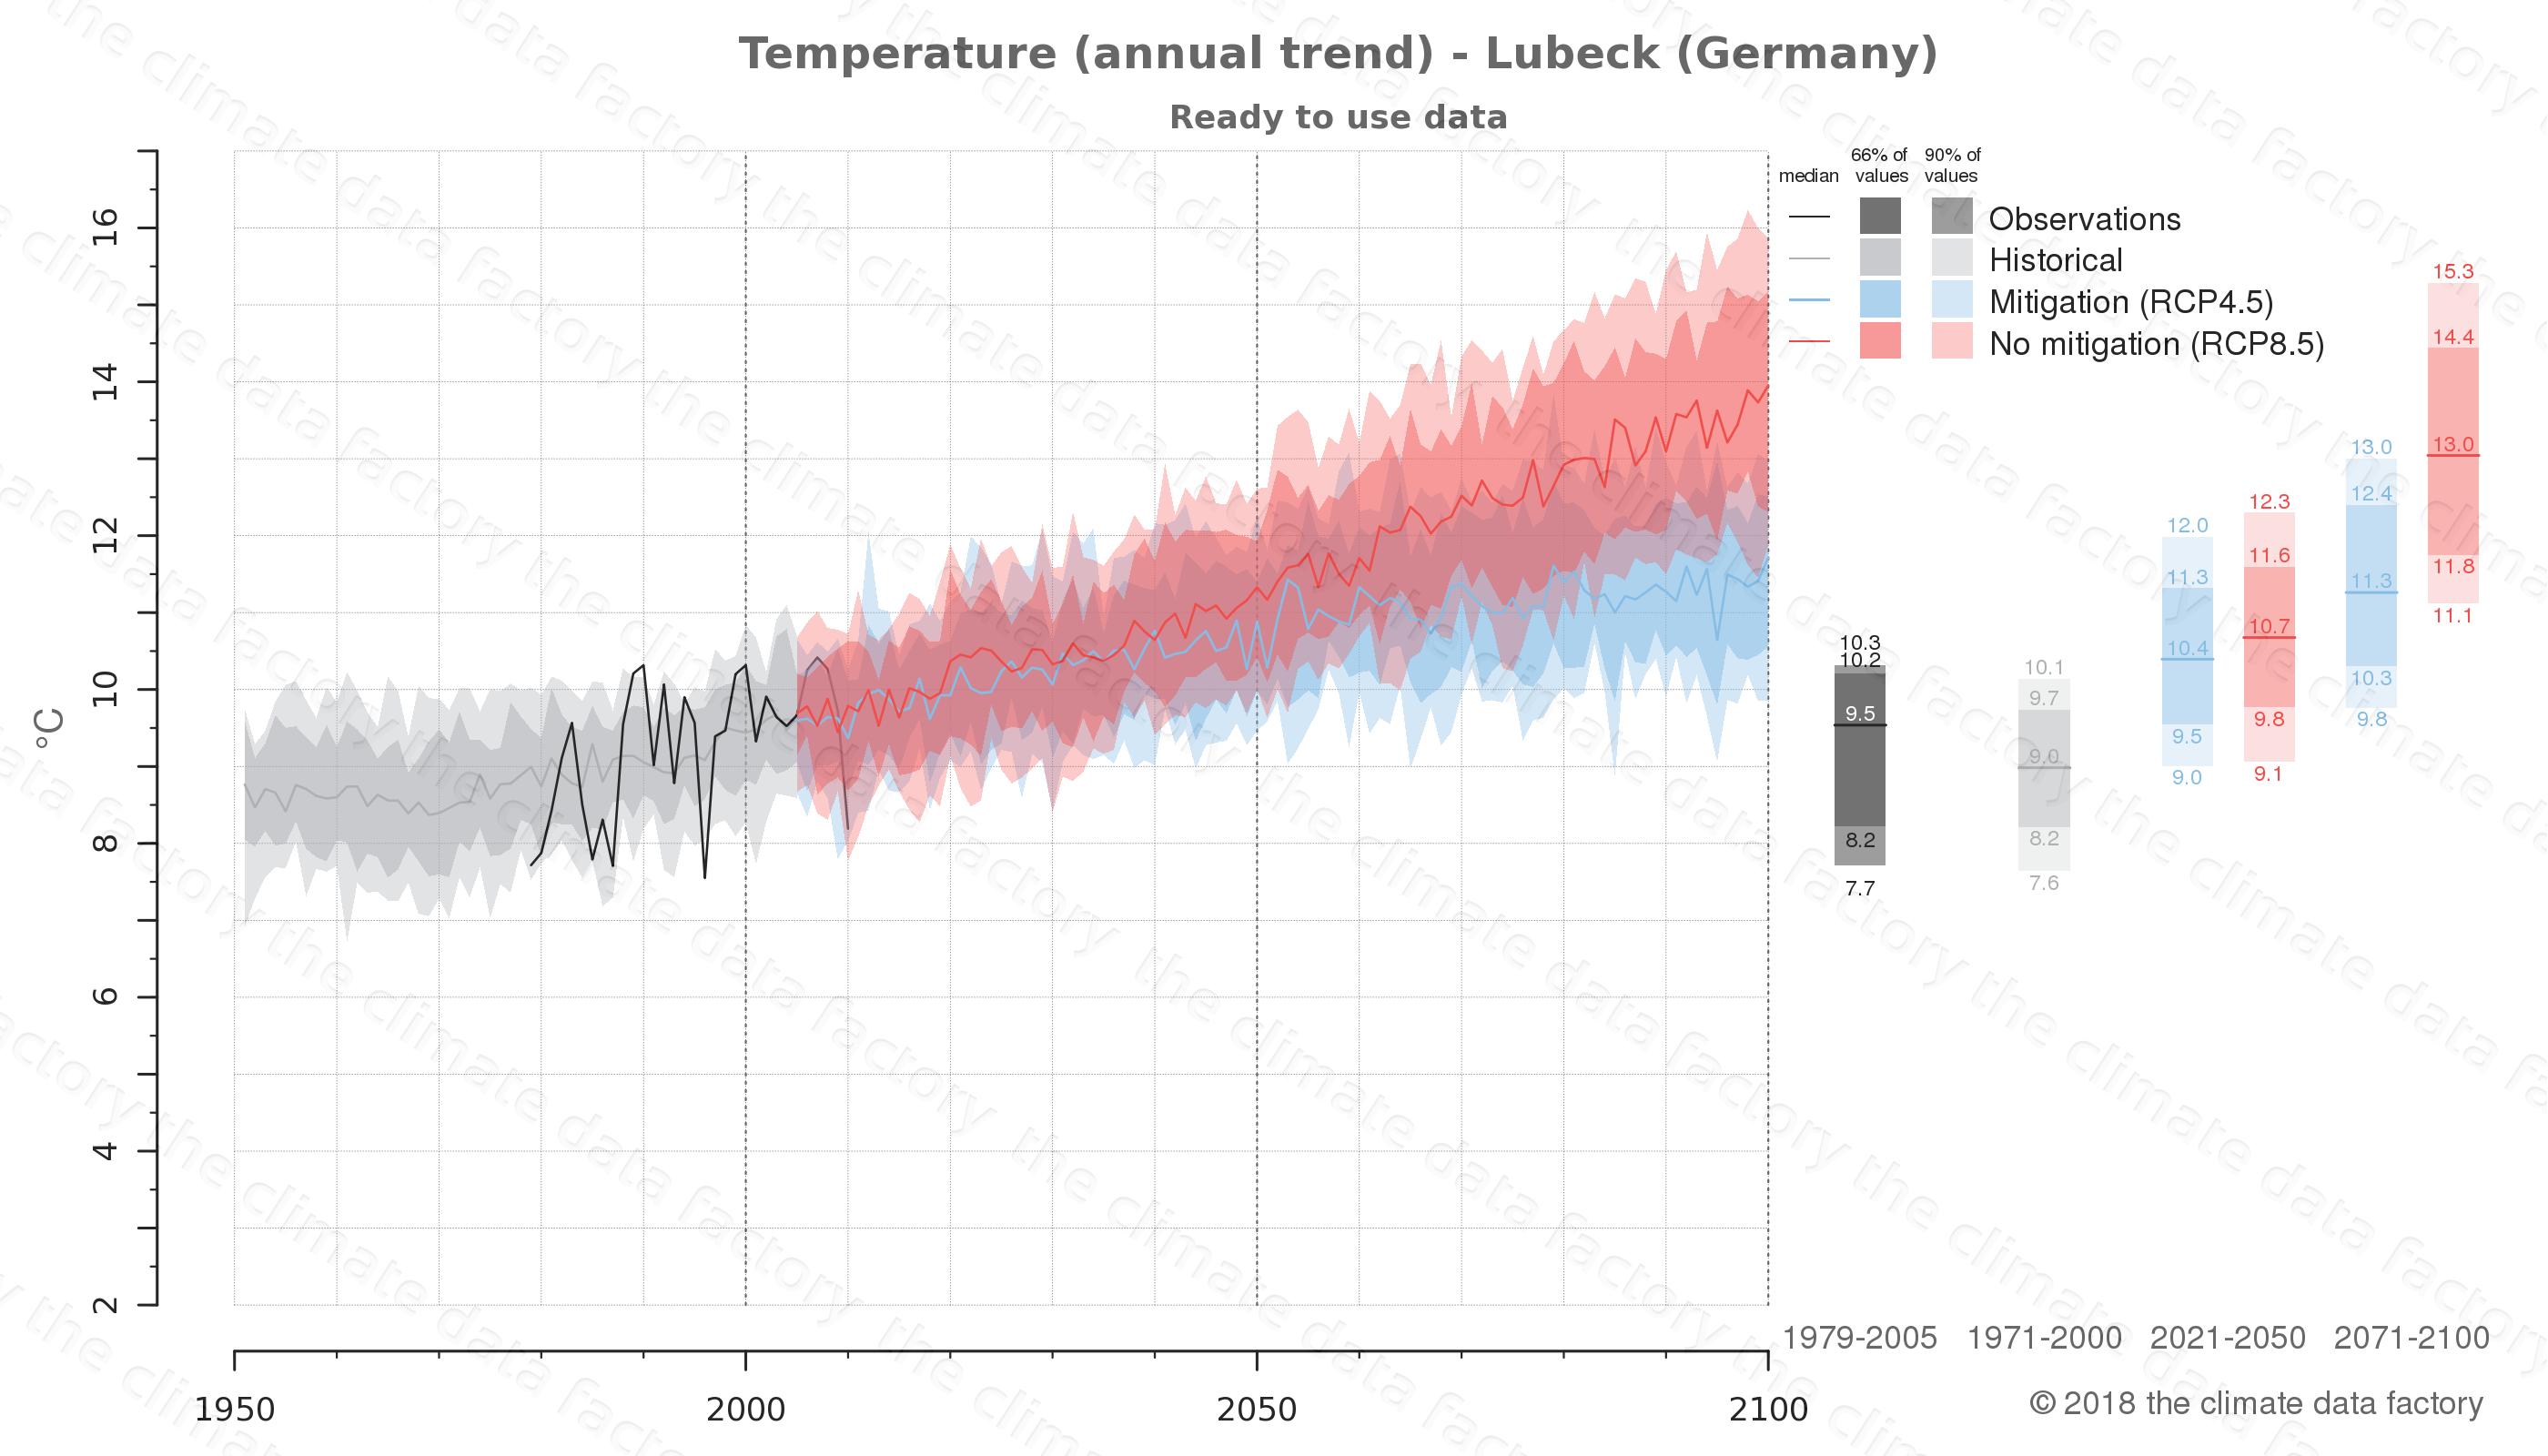 climate change data policy adaptation climate graph city data temperature lubeck germany